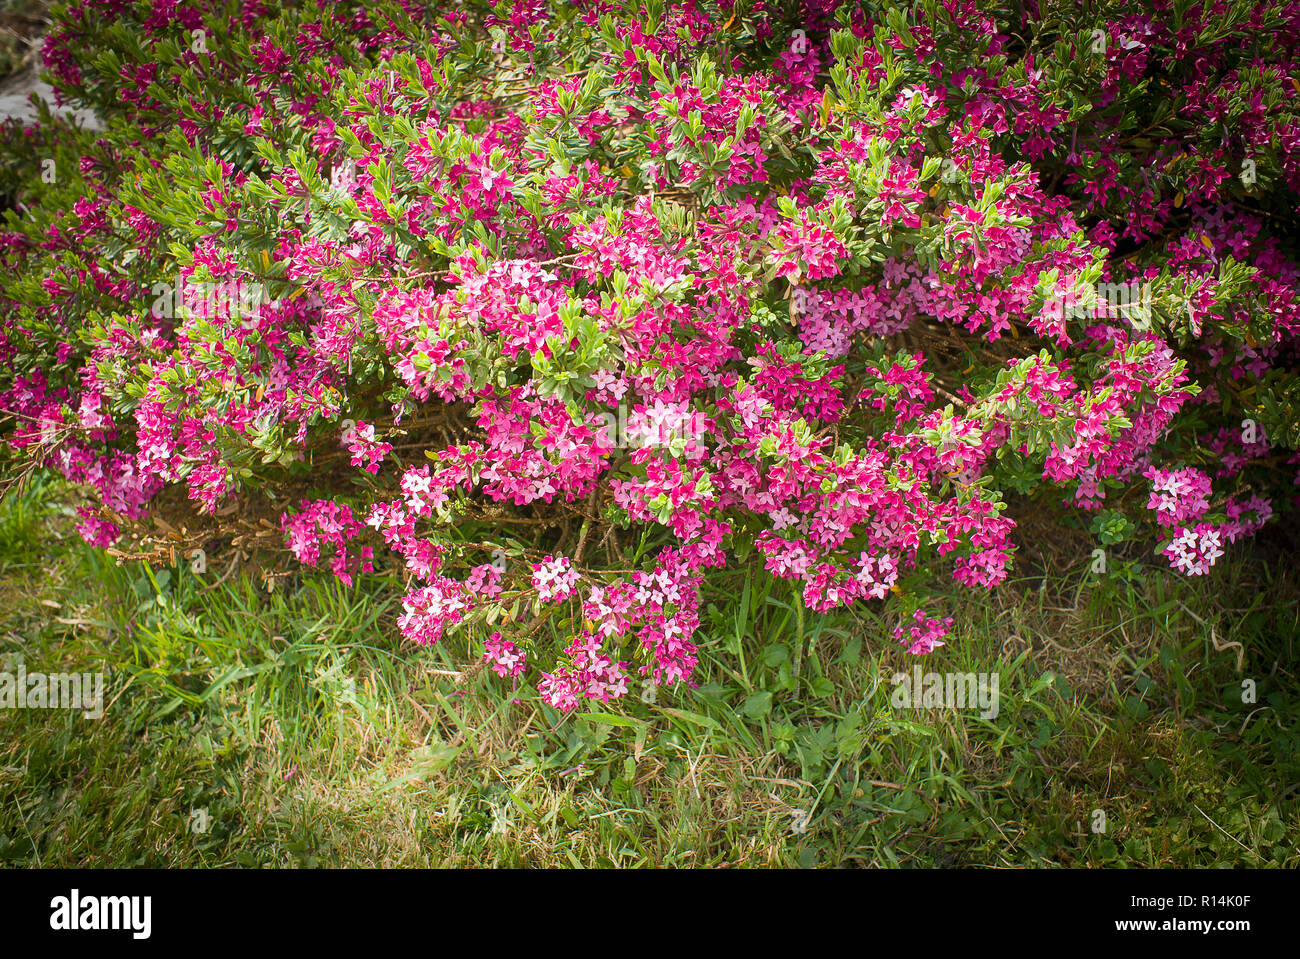 Daphne cneorum in flower in an English garden in May - Stock Image